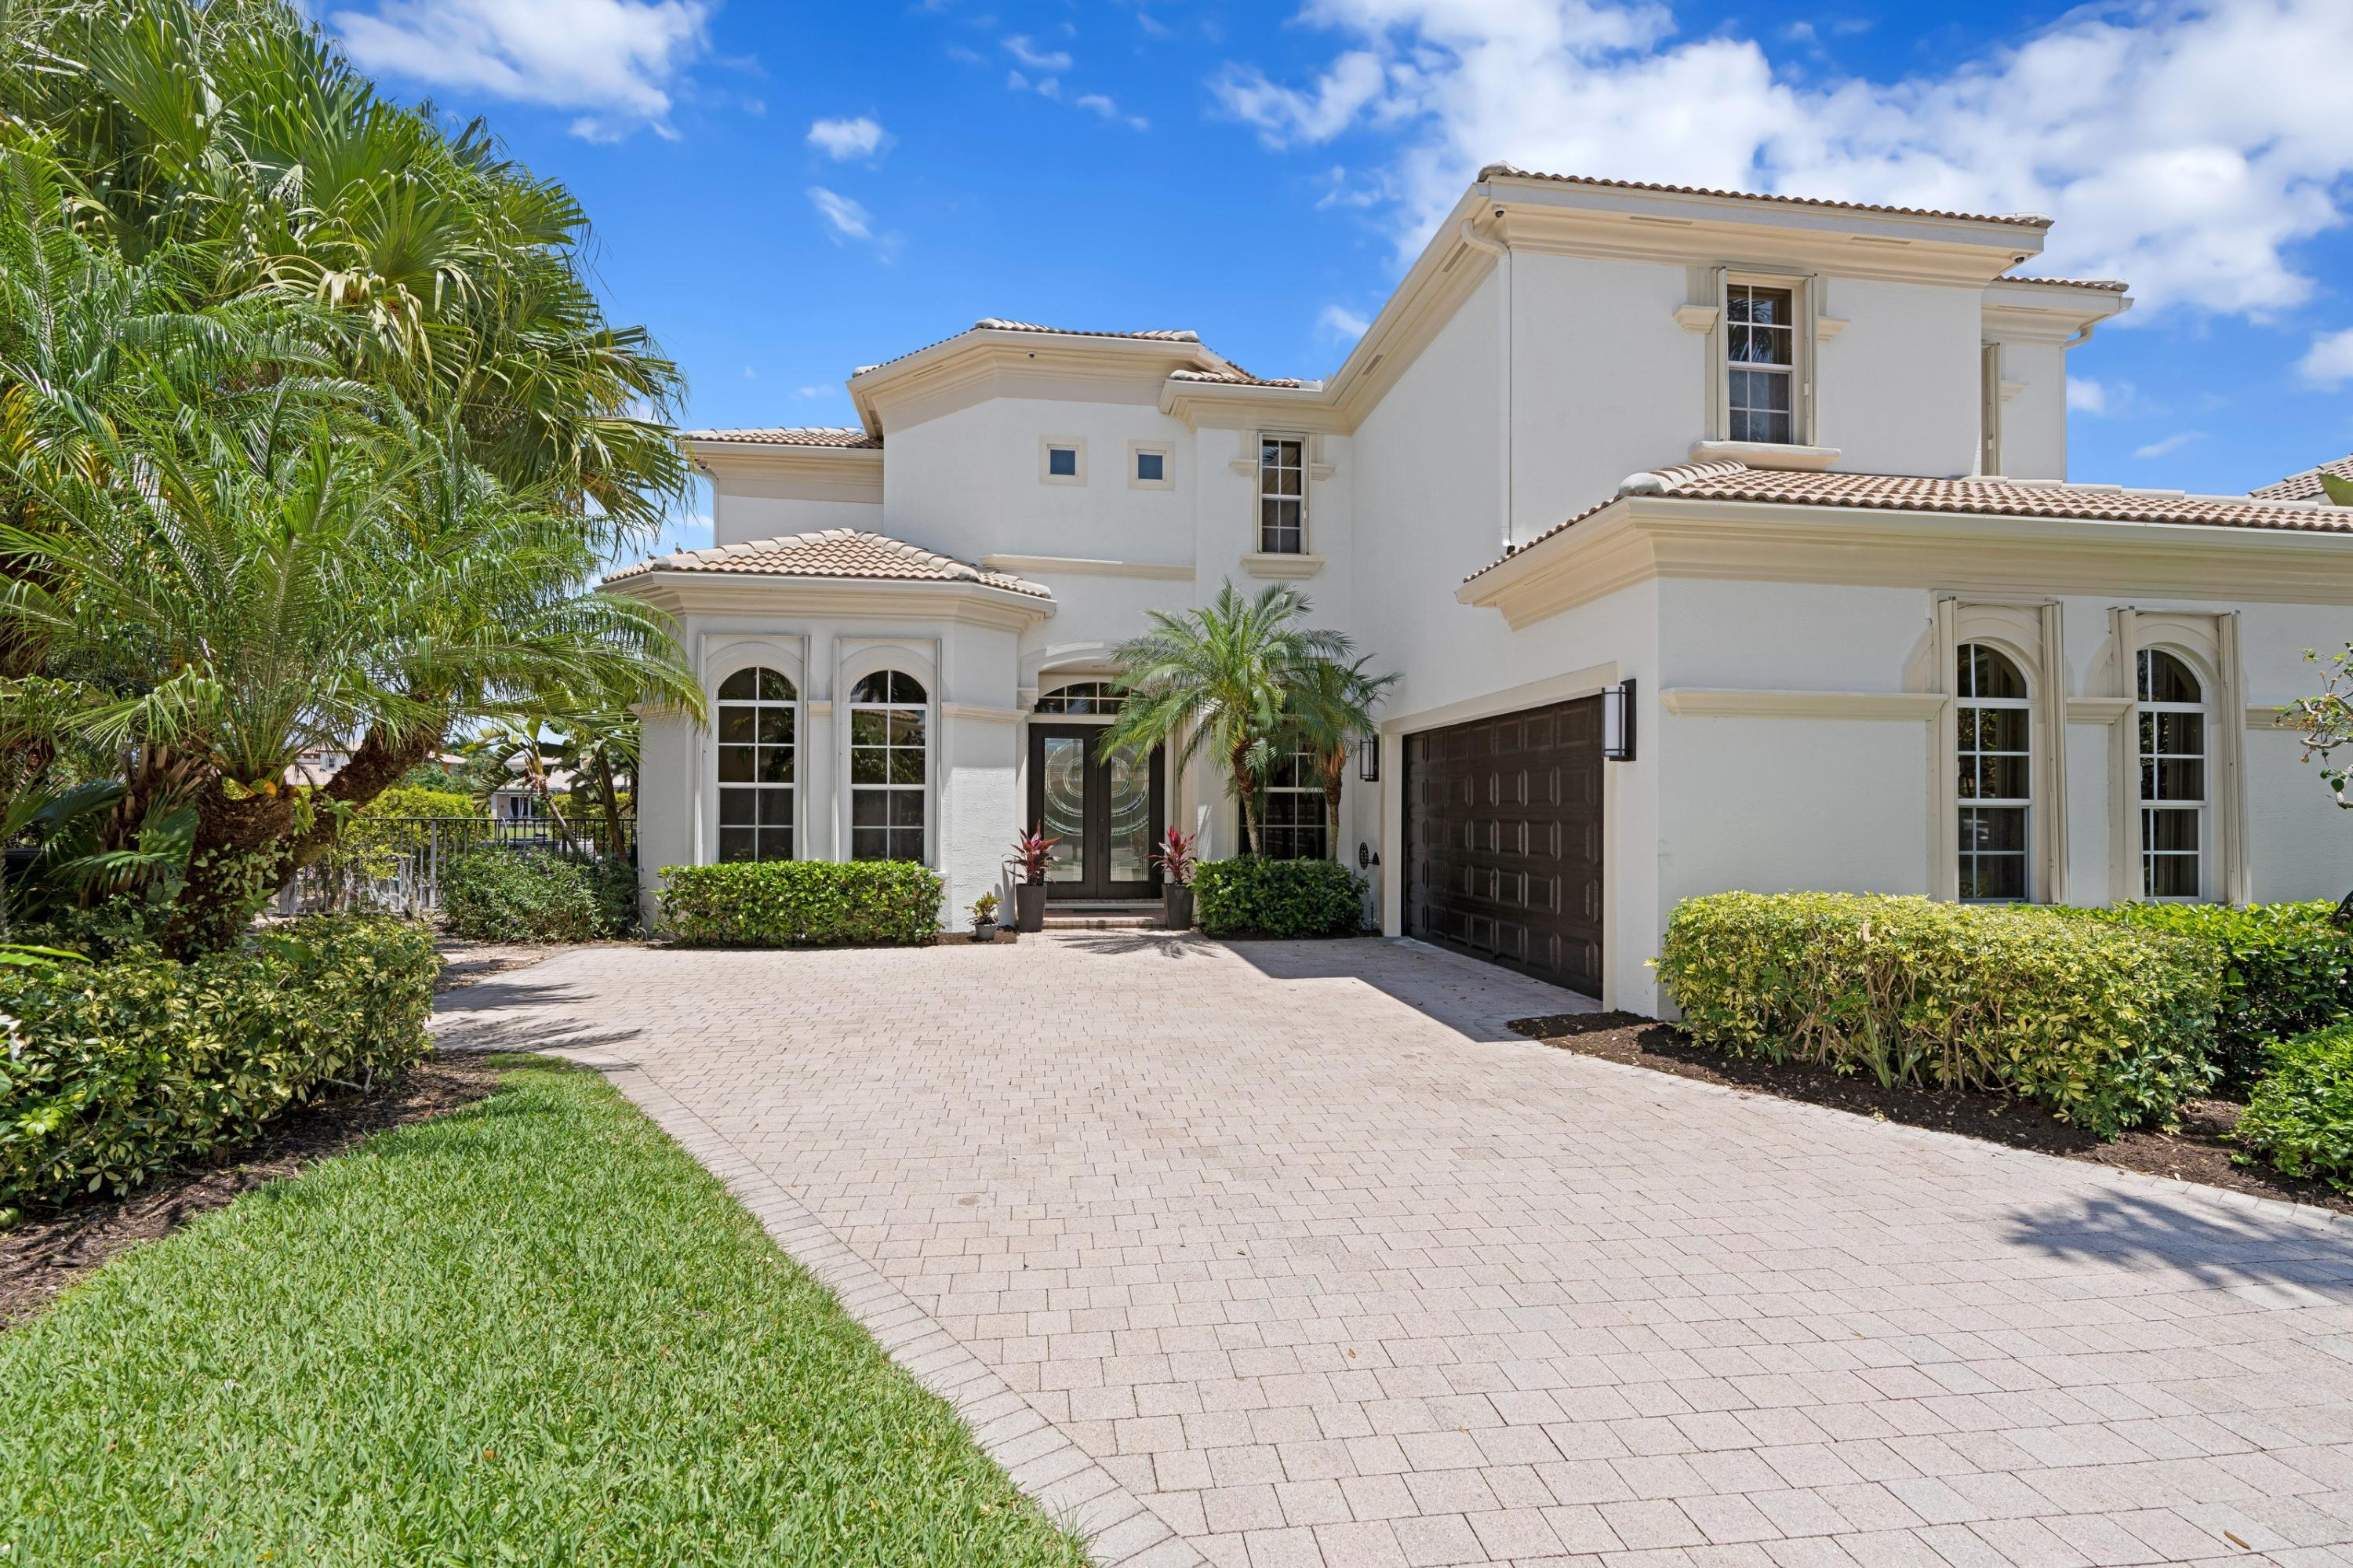 Unbelievable Views! RARE lot on cul de sac with 180 degree wide lake vistas. Entertain or be entertained by gorgeous Florida sunrises and sunsets. Completely redone smart home with modern kitchen, all new bathrooms, 48'' European porcelain tile floors, high tech security system, and a backyard with lap pool and spa that was recently retiled. Five large bedrooms all with en suite bathrooms. Large windows throughout the home. Light filled open floor plan on this highly sought out Seville model on prime cul de sac. This will not last. Mirasol Country Club is an award winning golf and tennis club with resort amenities, restaurants and nature trails. Close to entertainment, restaurants, beach, top schools and more.Capital contributions required to MMMA, MCA and Vizcaya POA. Full updates in ml